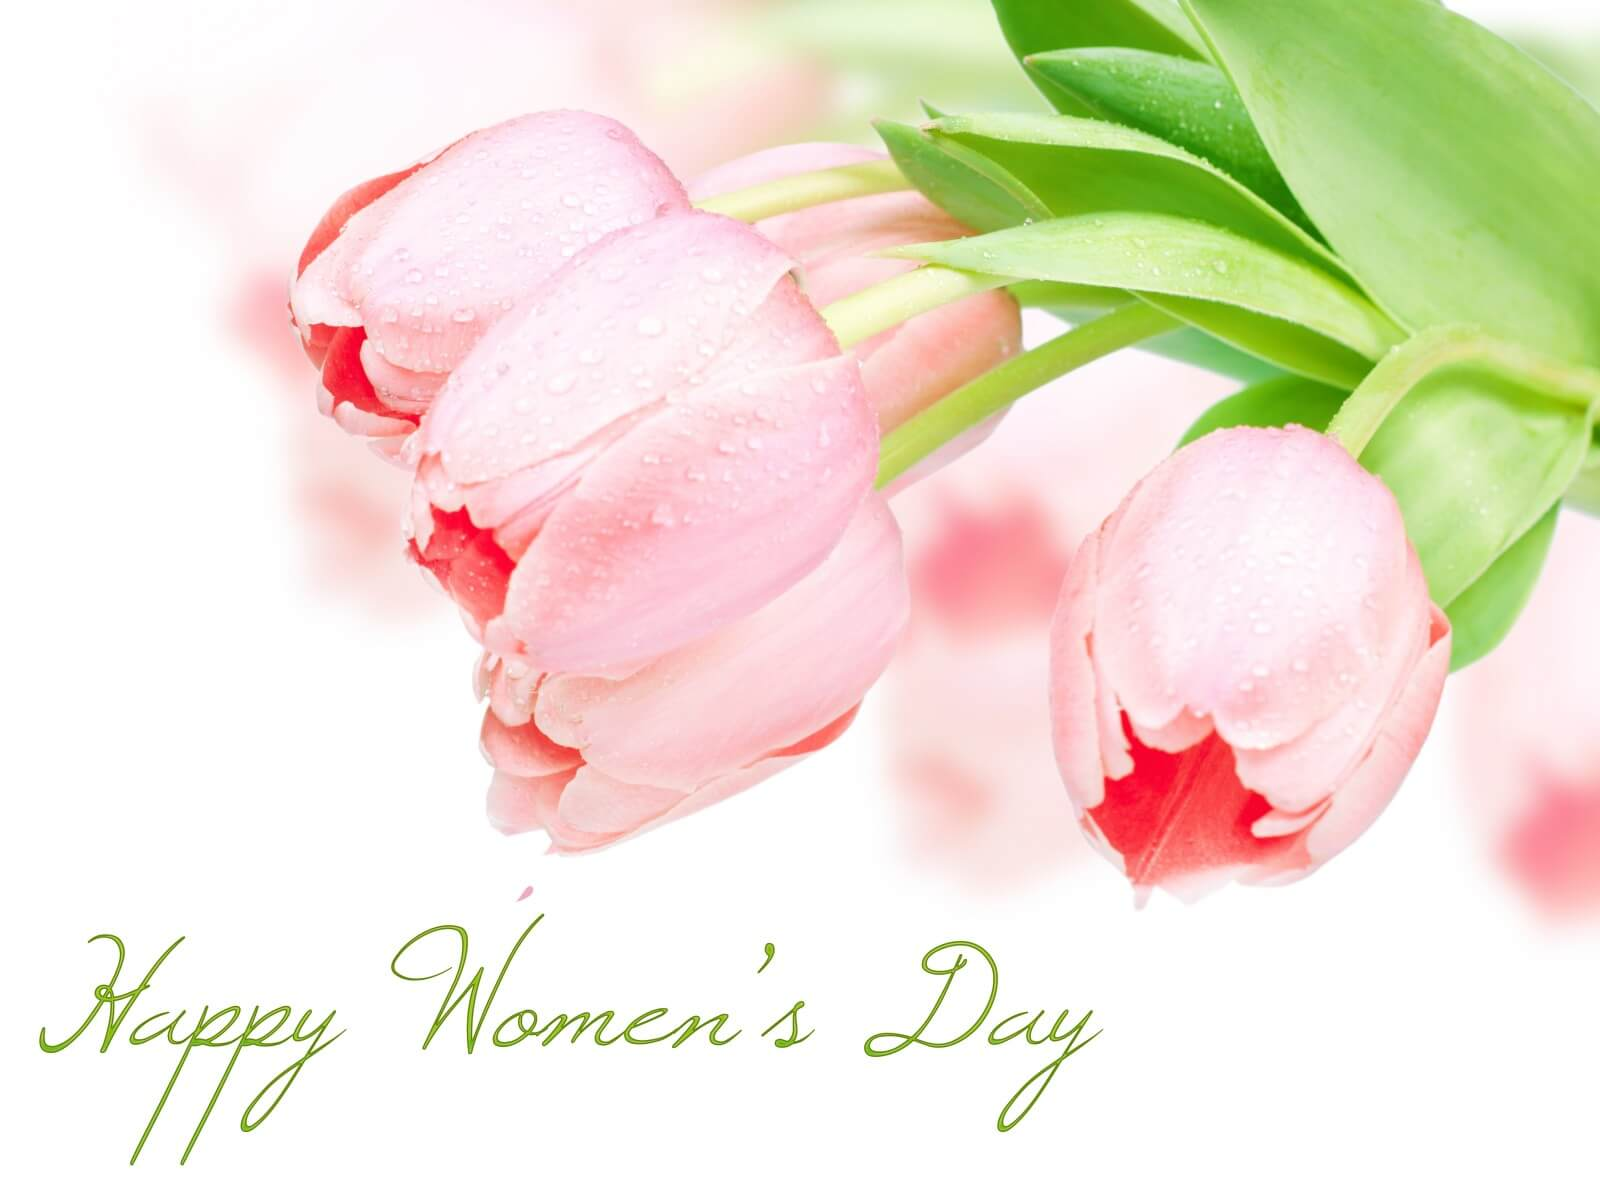 happy international womens day roses wishes hd wallpaper